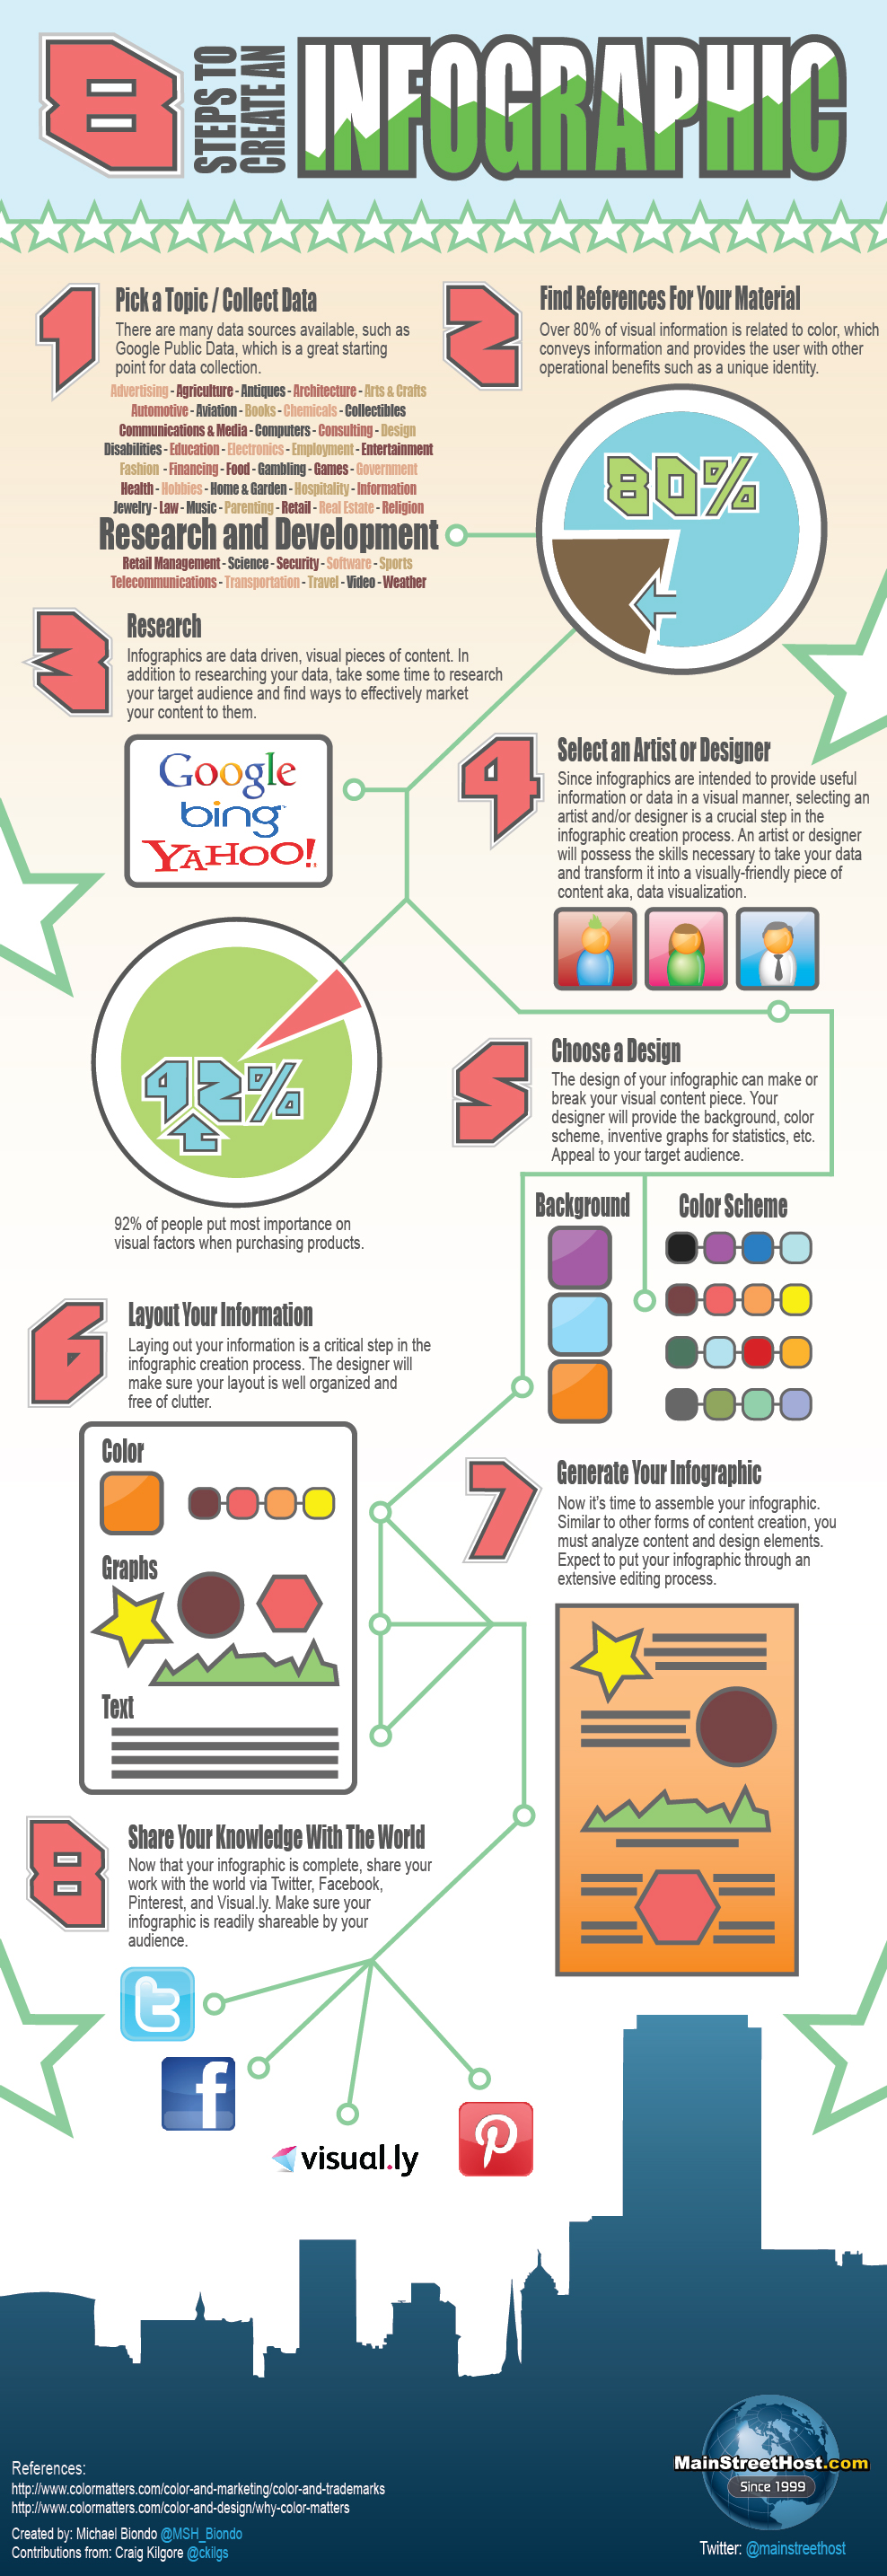 8 Steps To Creating An Infographic